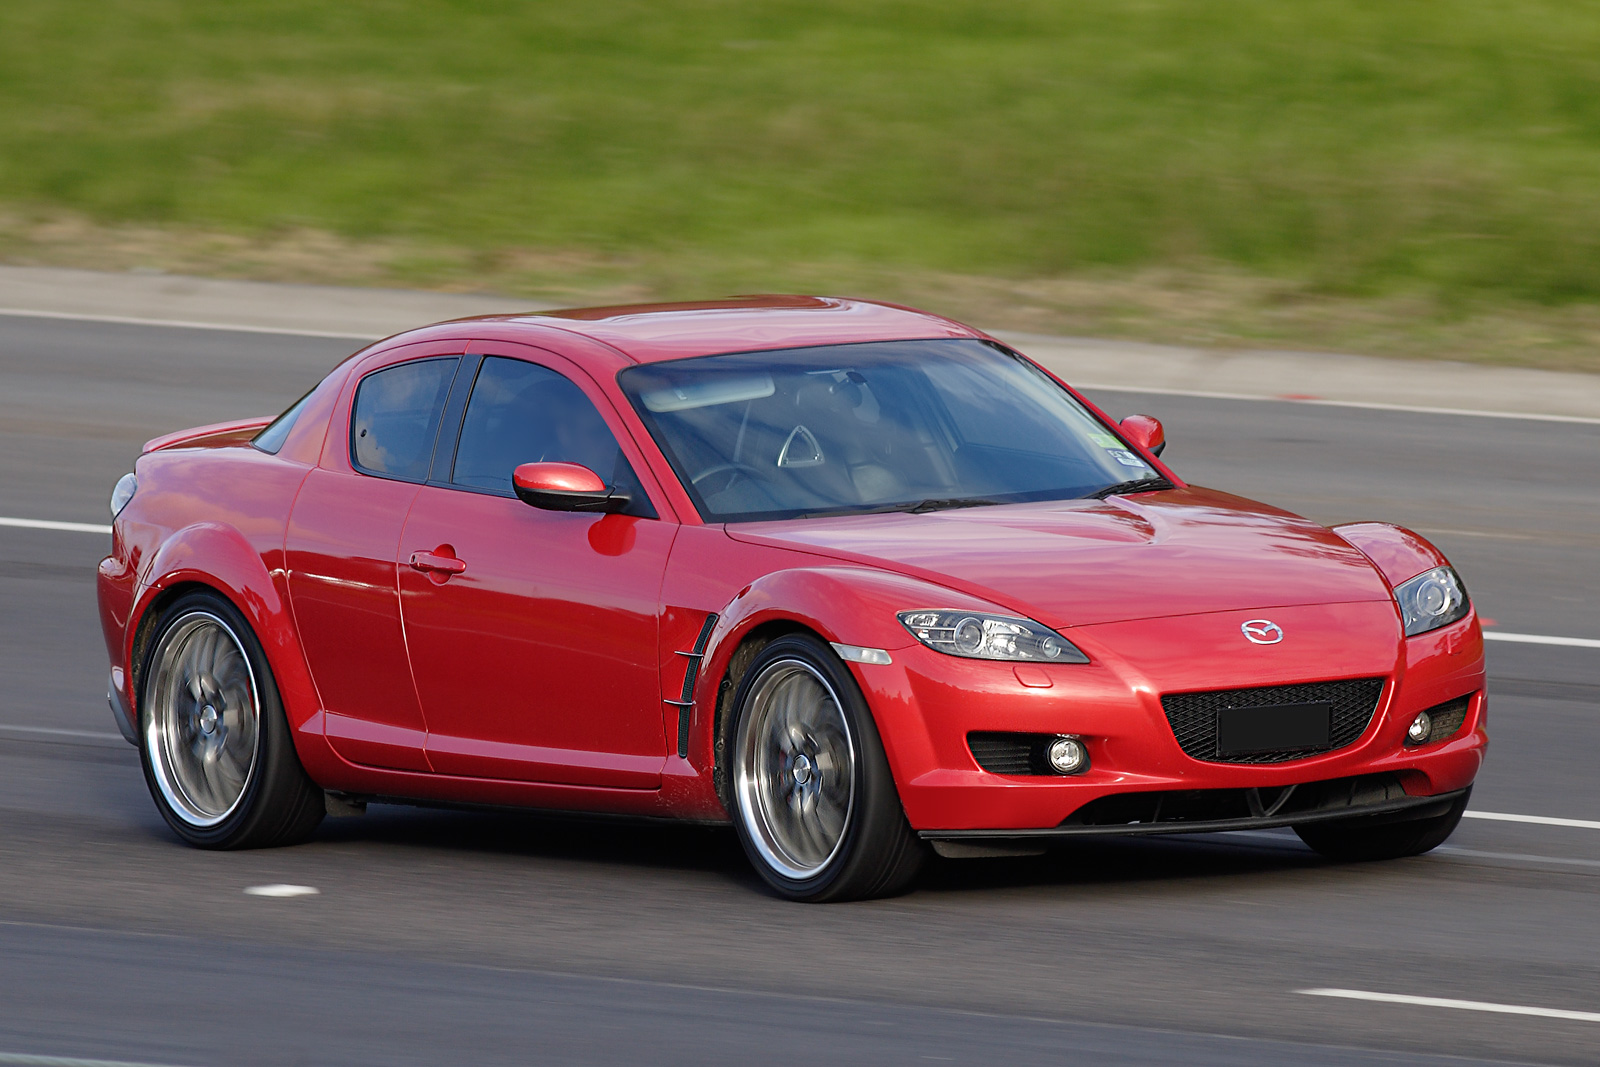 File:Mazda RX-8 on freeway.jpg - Wikipedia, the free encyclopedia